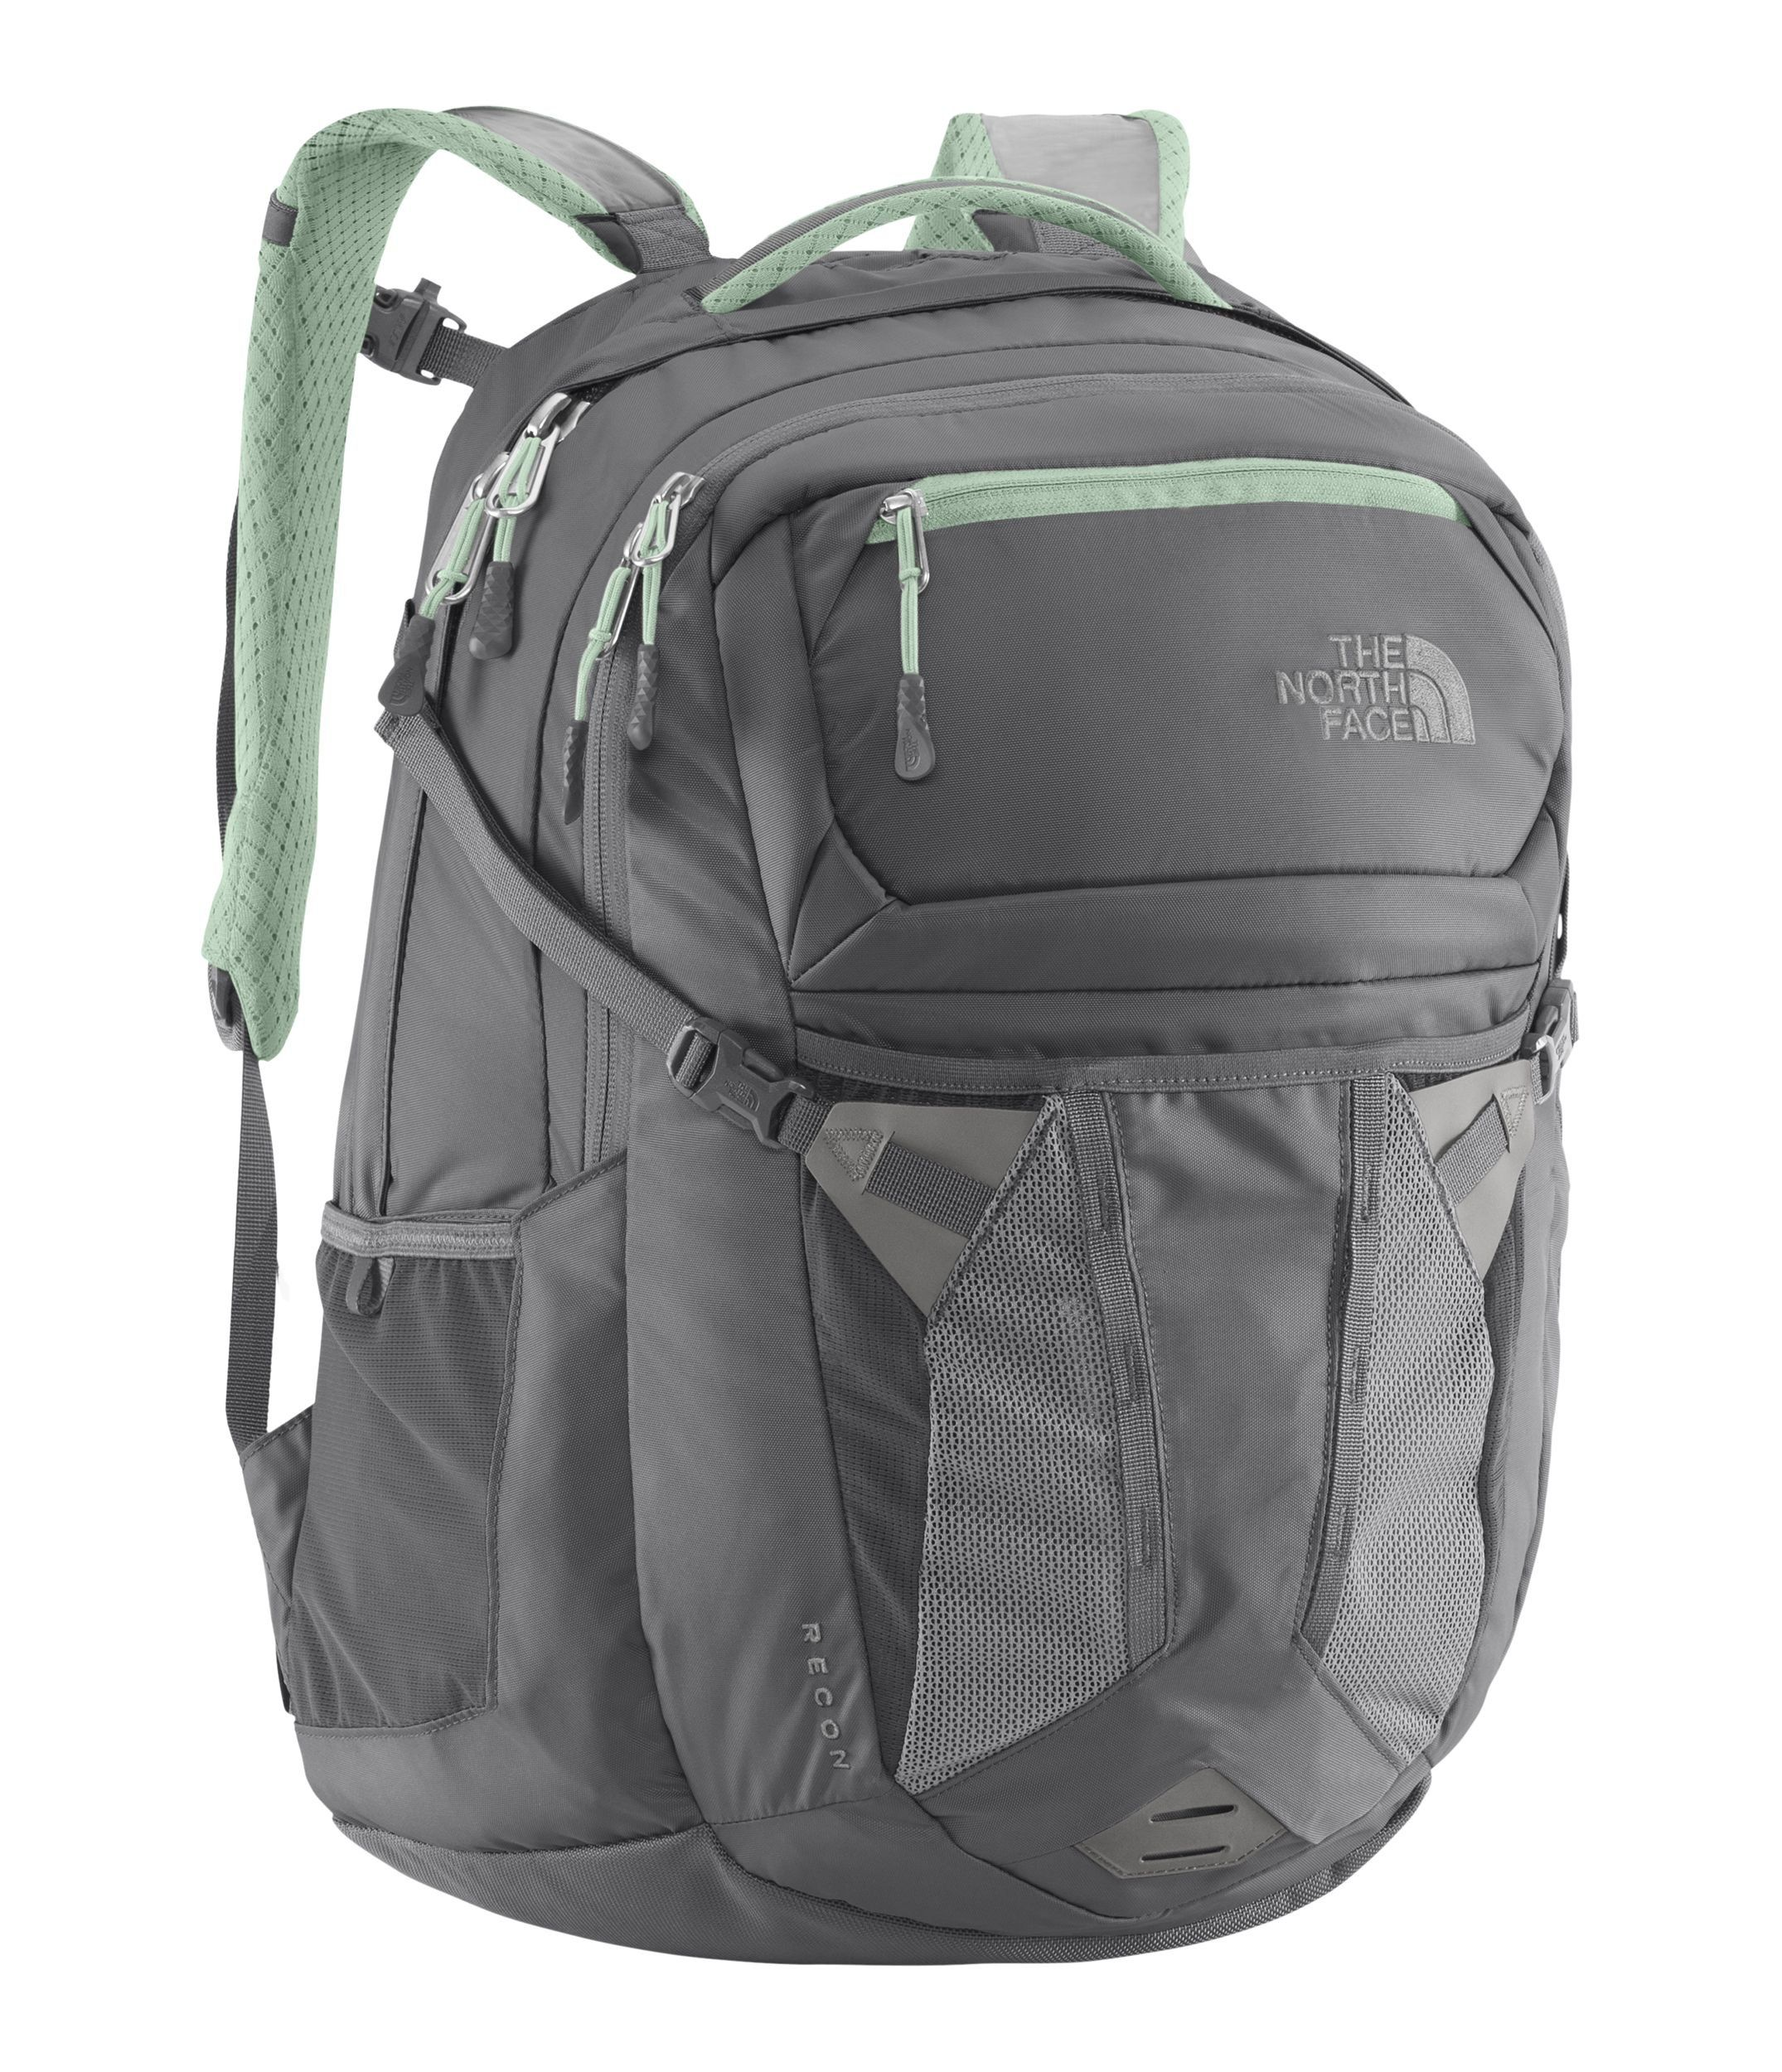 c38313fe1 The North Face Womens Recon Backpack (Zinc Grey/Surf Green ...